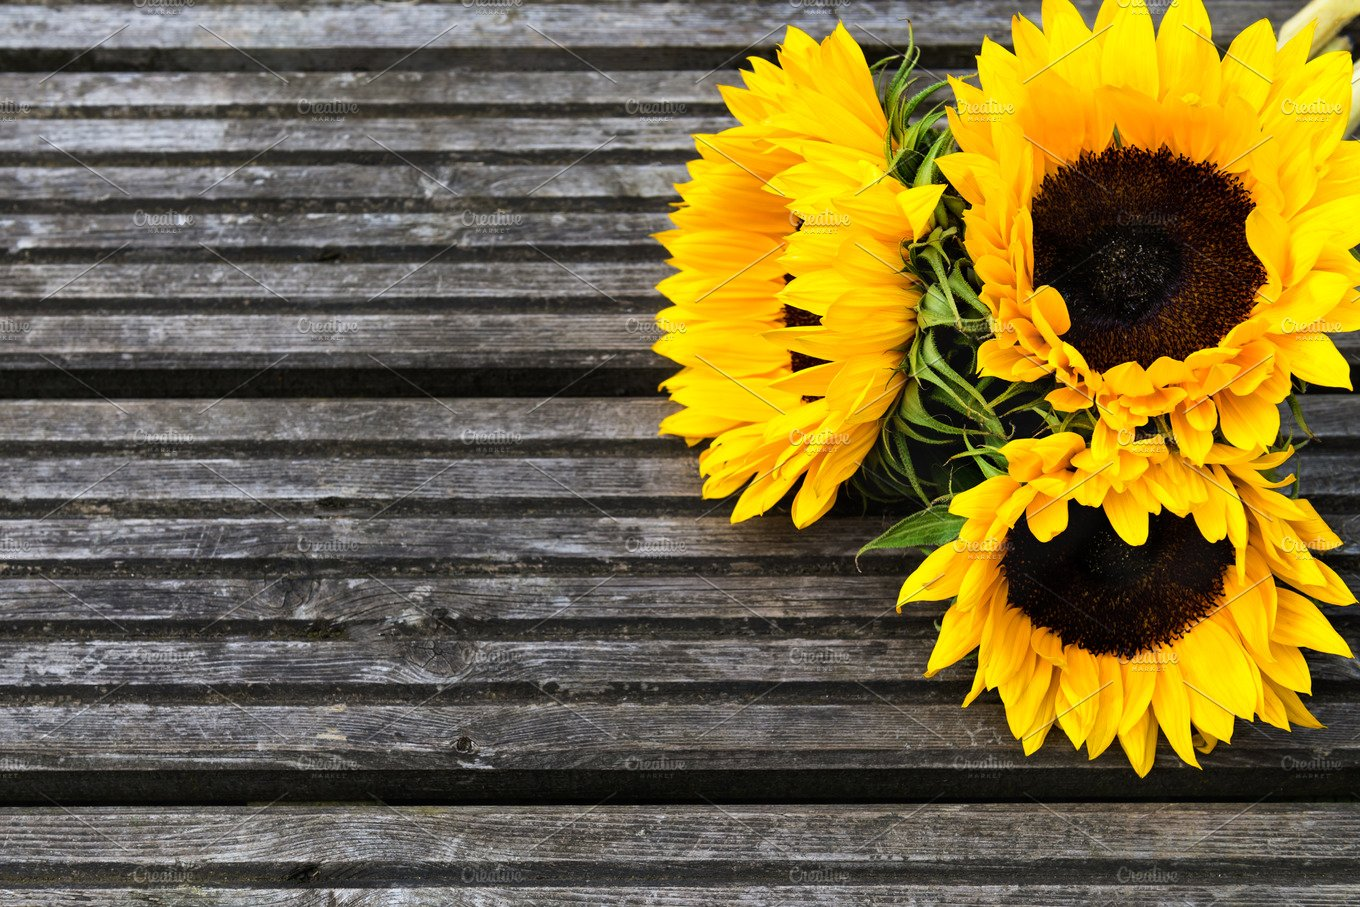 Yellow Sunflower Bouquet On Wooden Rustic Background Nature Photos Creative Market